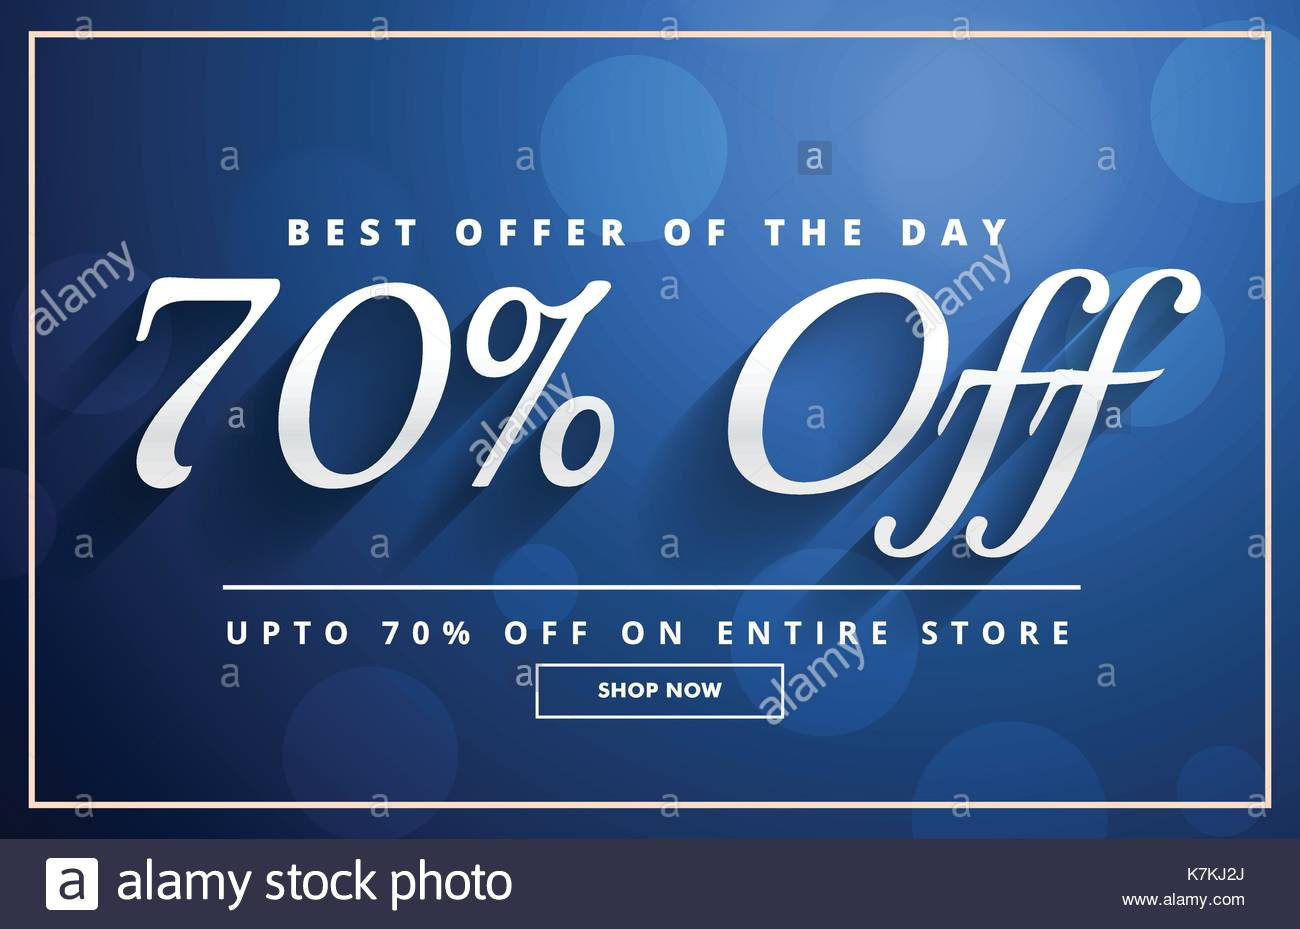 Offer Details Stock Photos & Offer Details Stock Images - Alamy